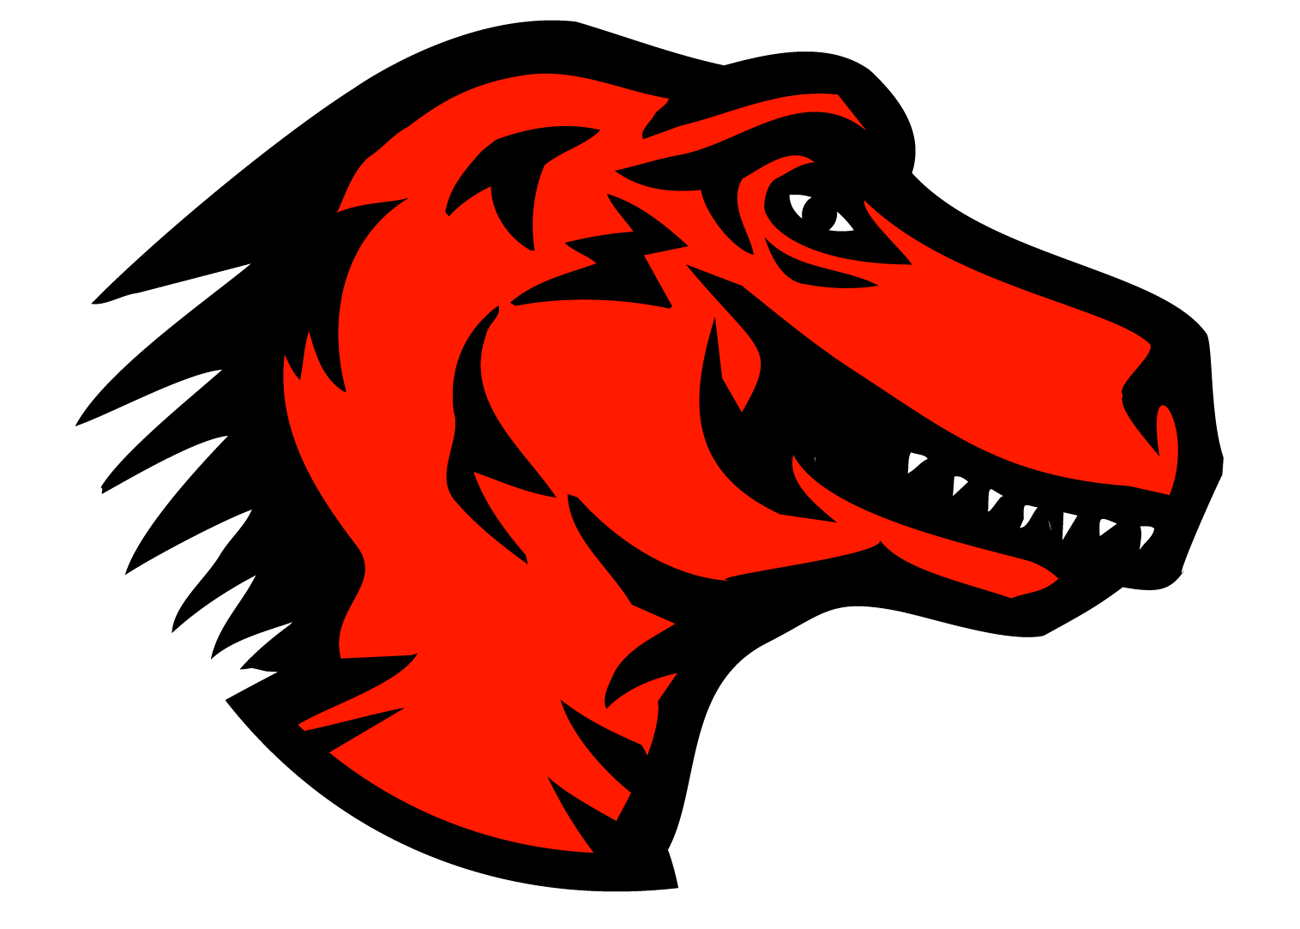 File:Mozilla dinosaur head logo.png - Wikimedia Commons